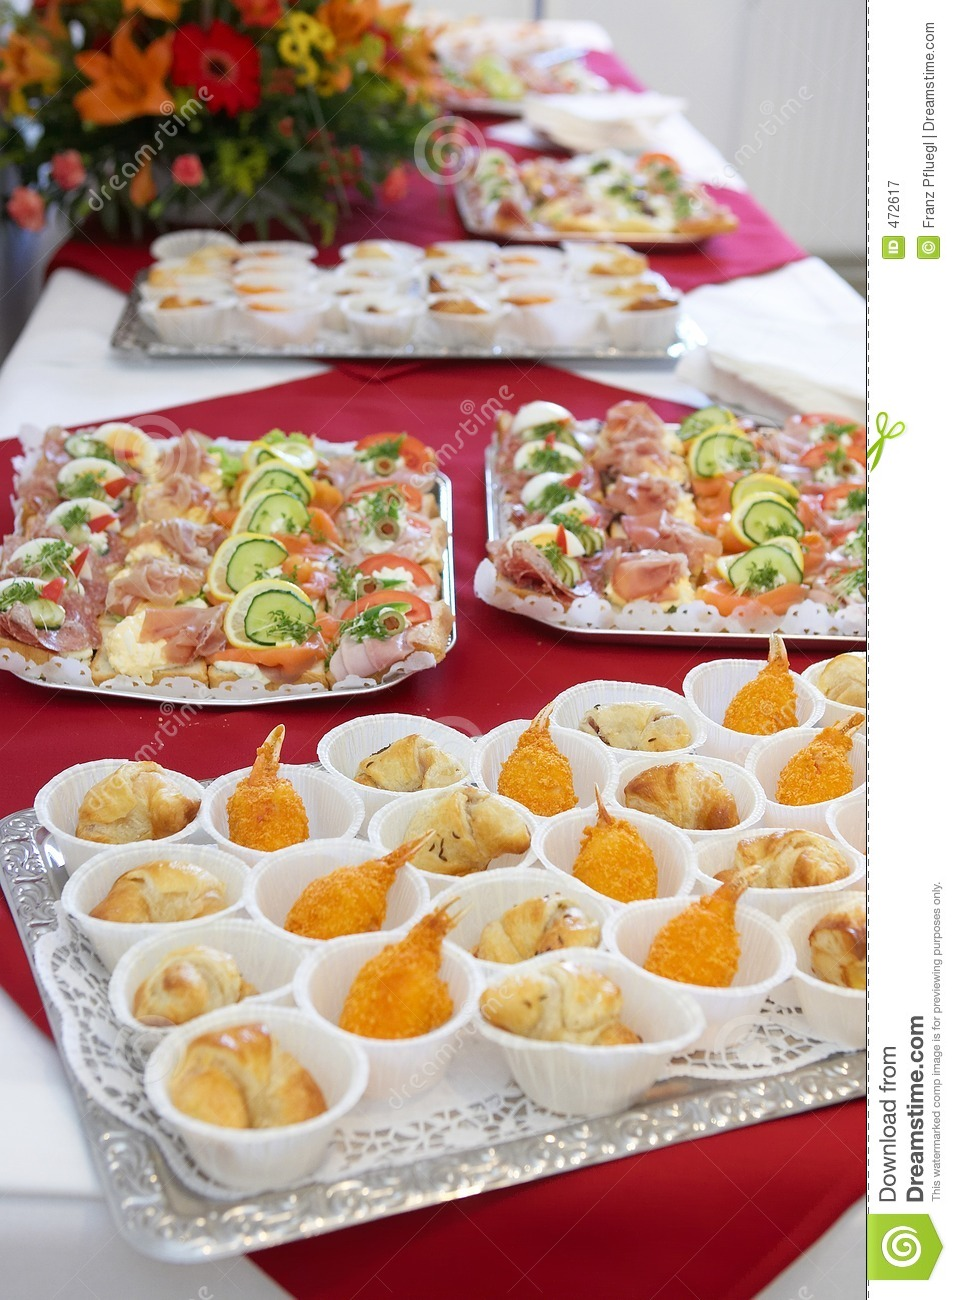 Download Appetizers - Appettithappen Stock Image - Image of speisen, essen: 472617